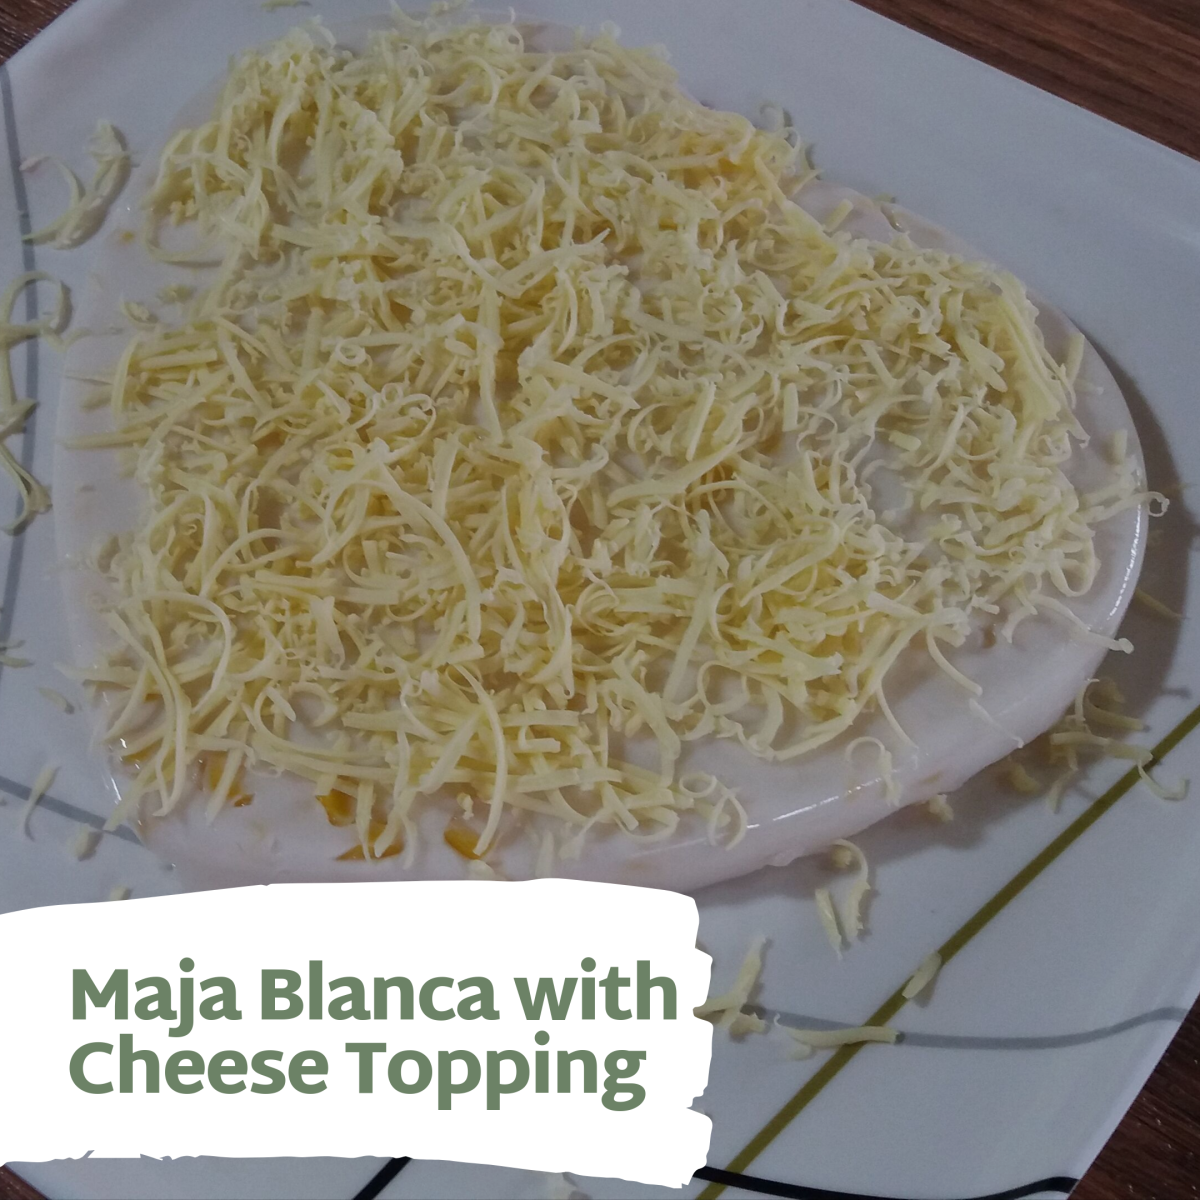 Learn how to make maja blanca with a cheesy topping.